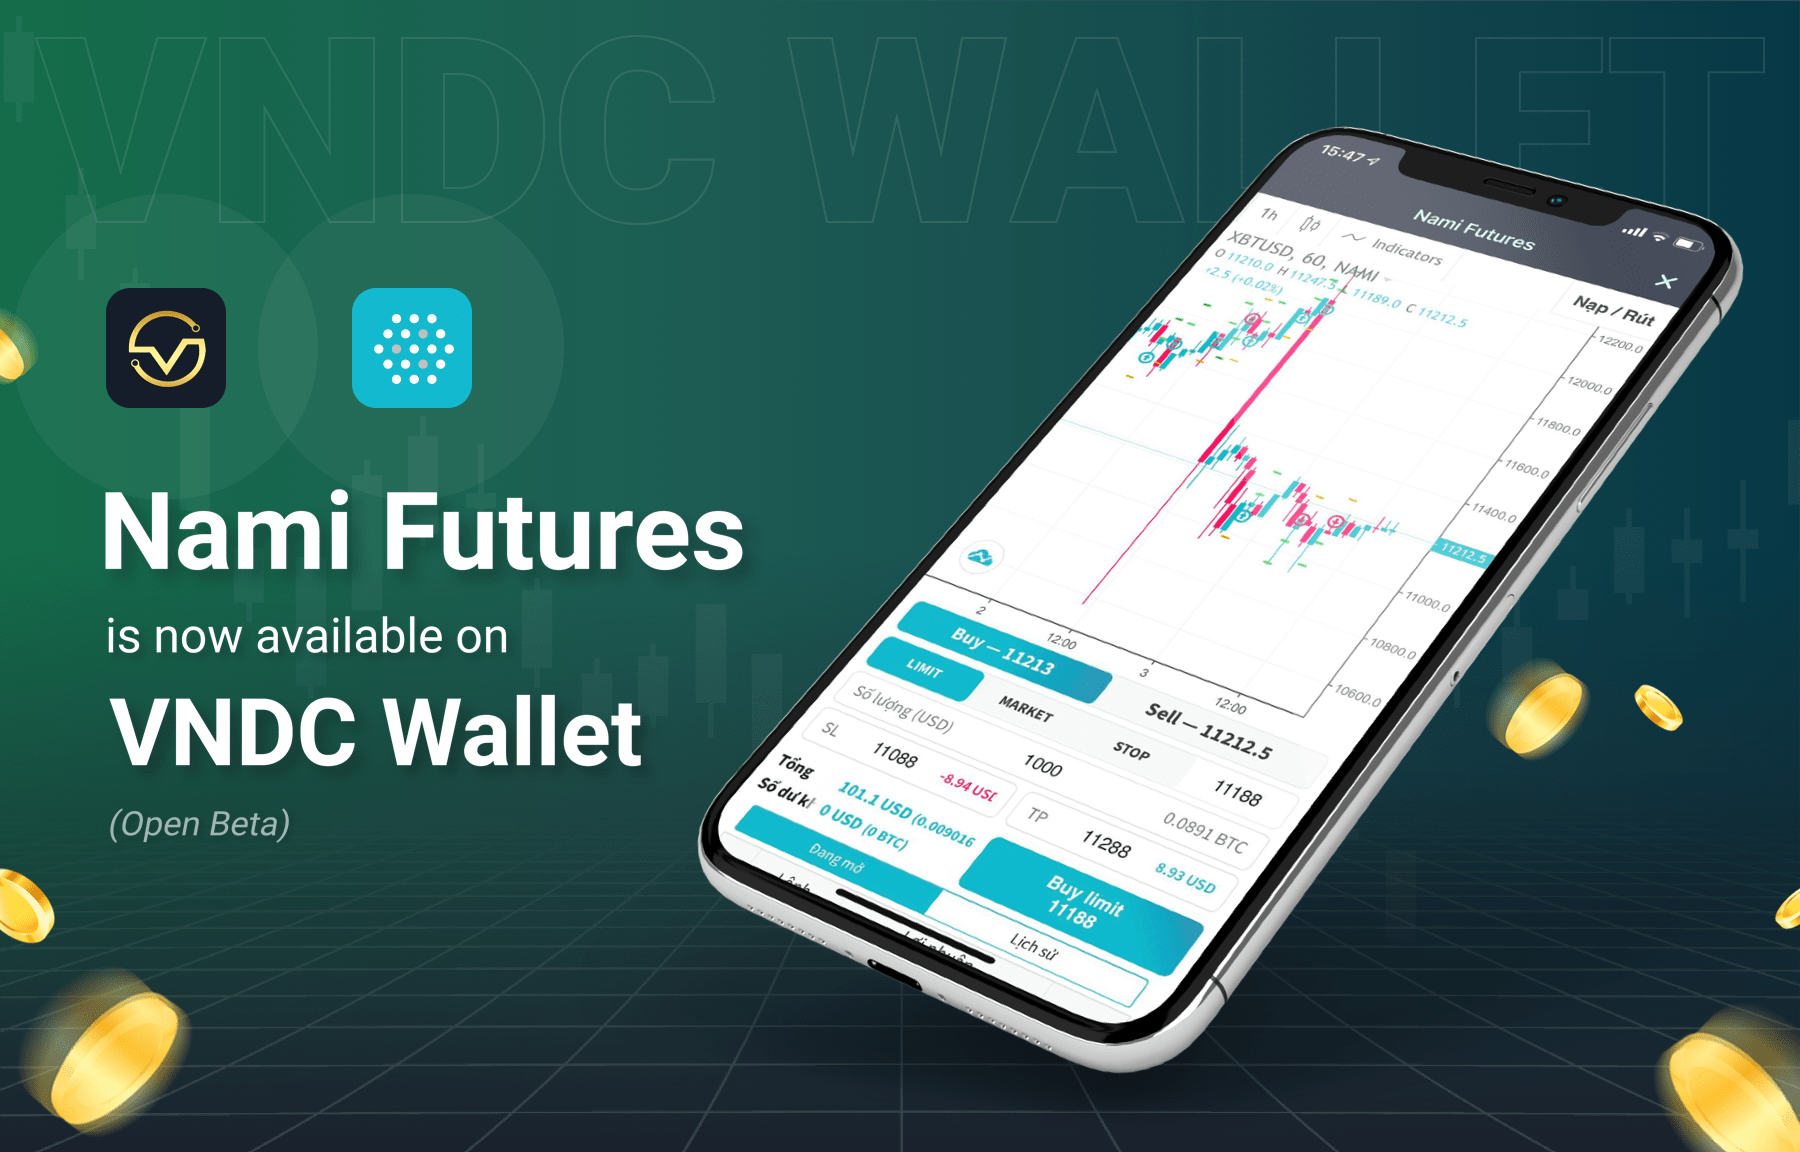 Nami Futures now available on VNDC Wallet (Open Beta)